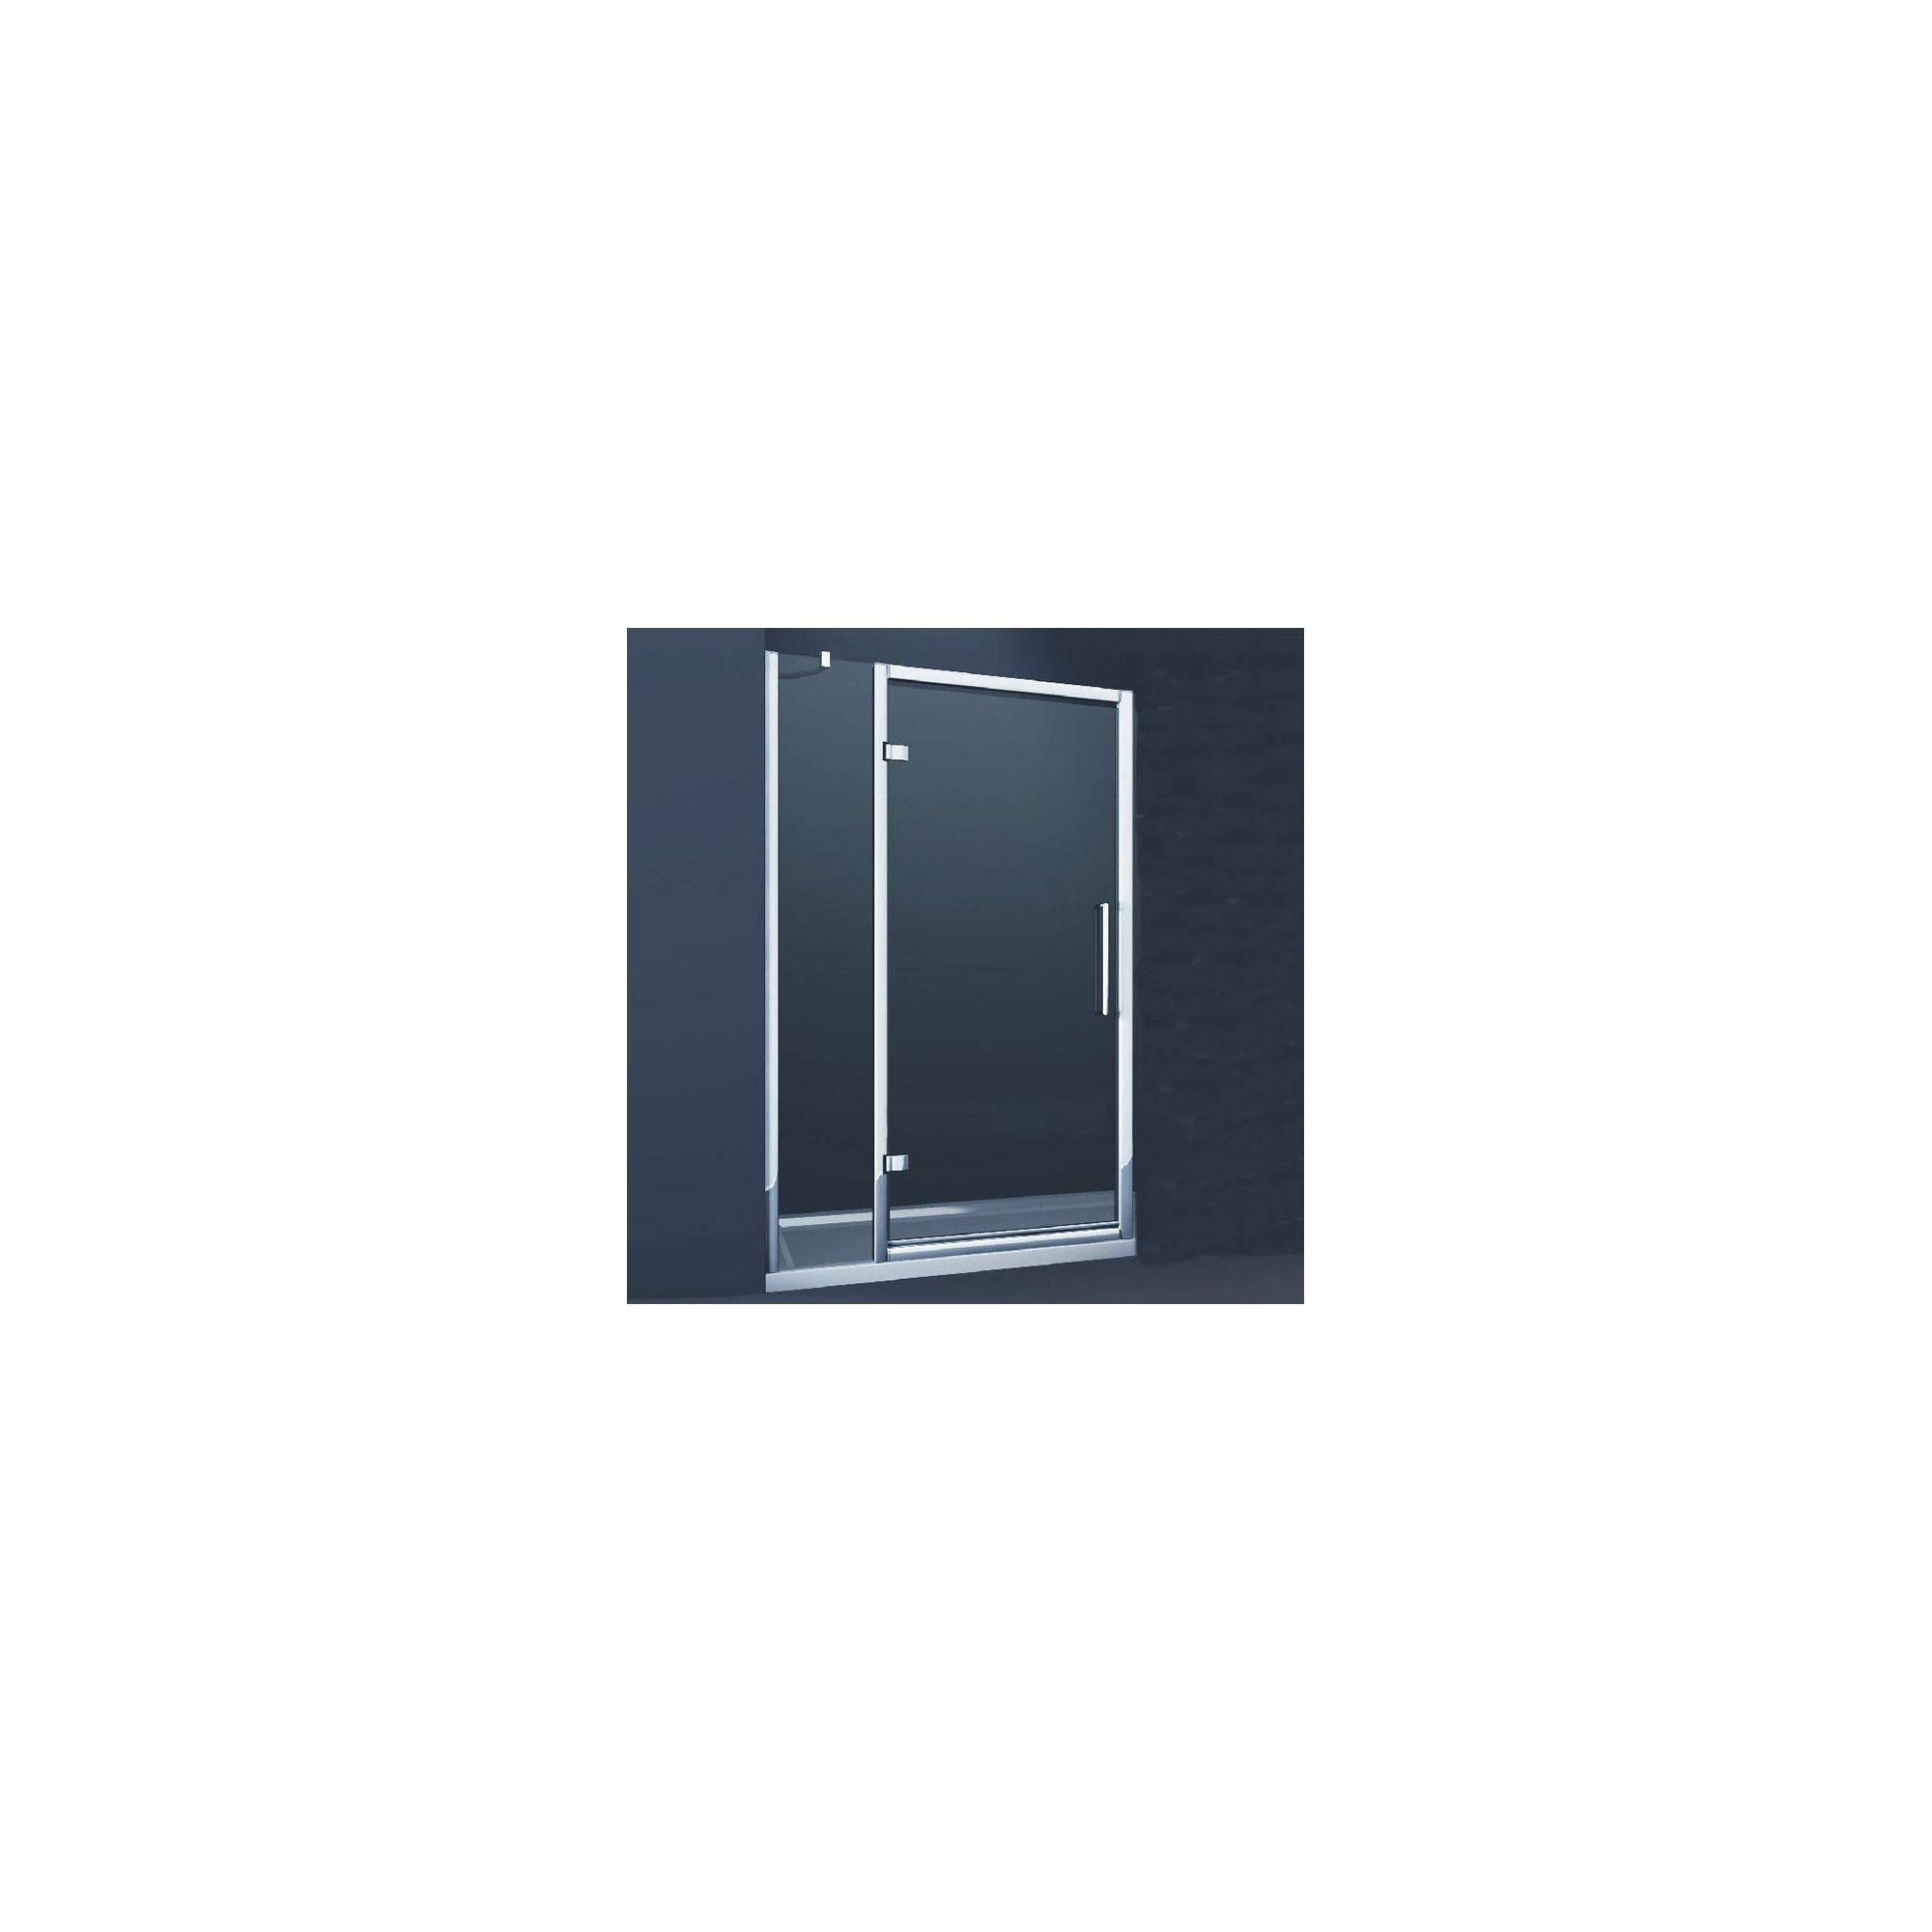 Merlyn Series 8 Inline Hinged Shower Door, 900mm Wide, Chrome Frame, 8mm Glass at Tesco Direct